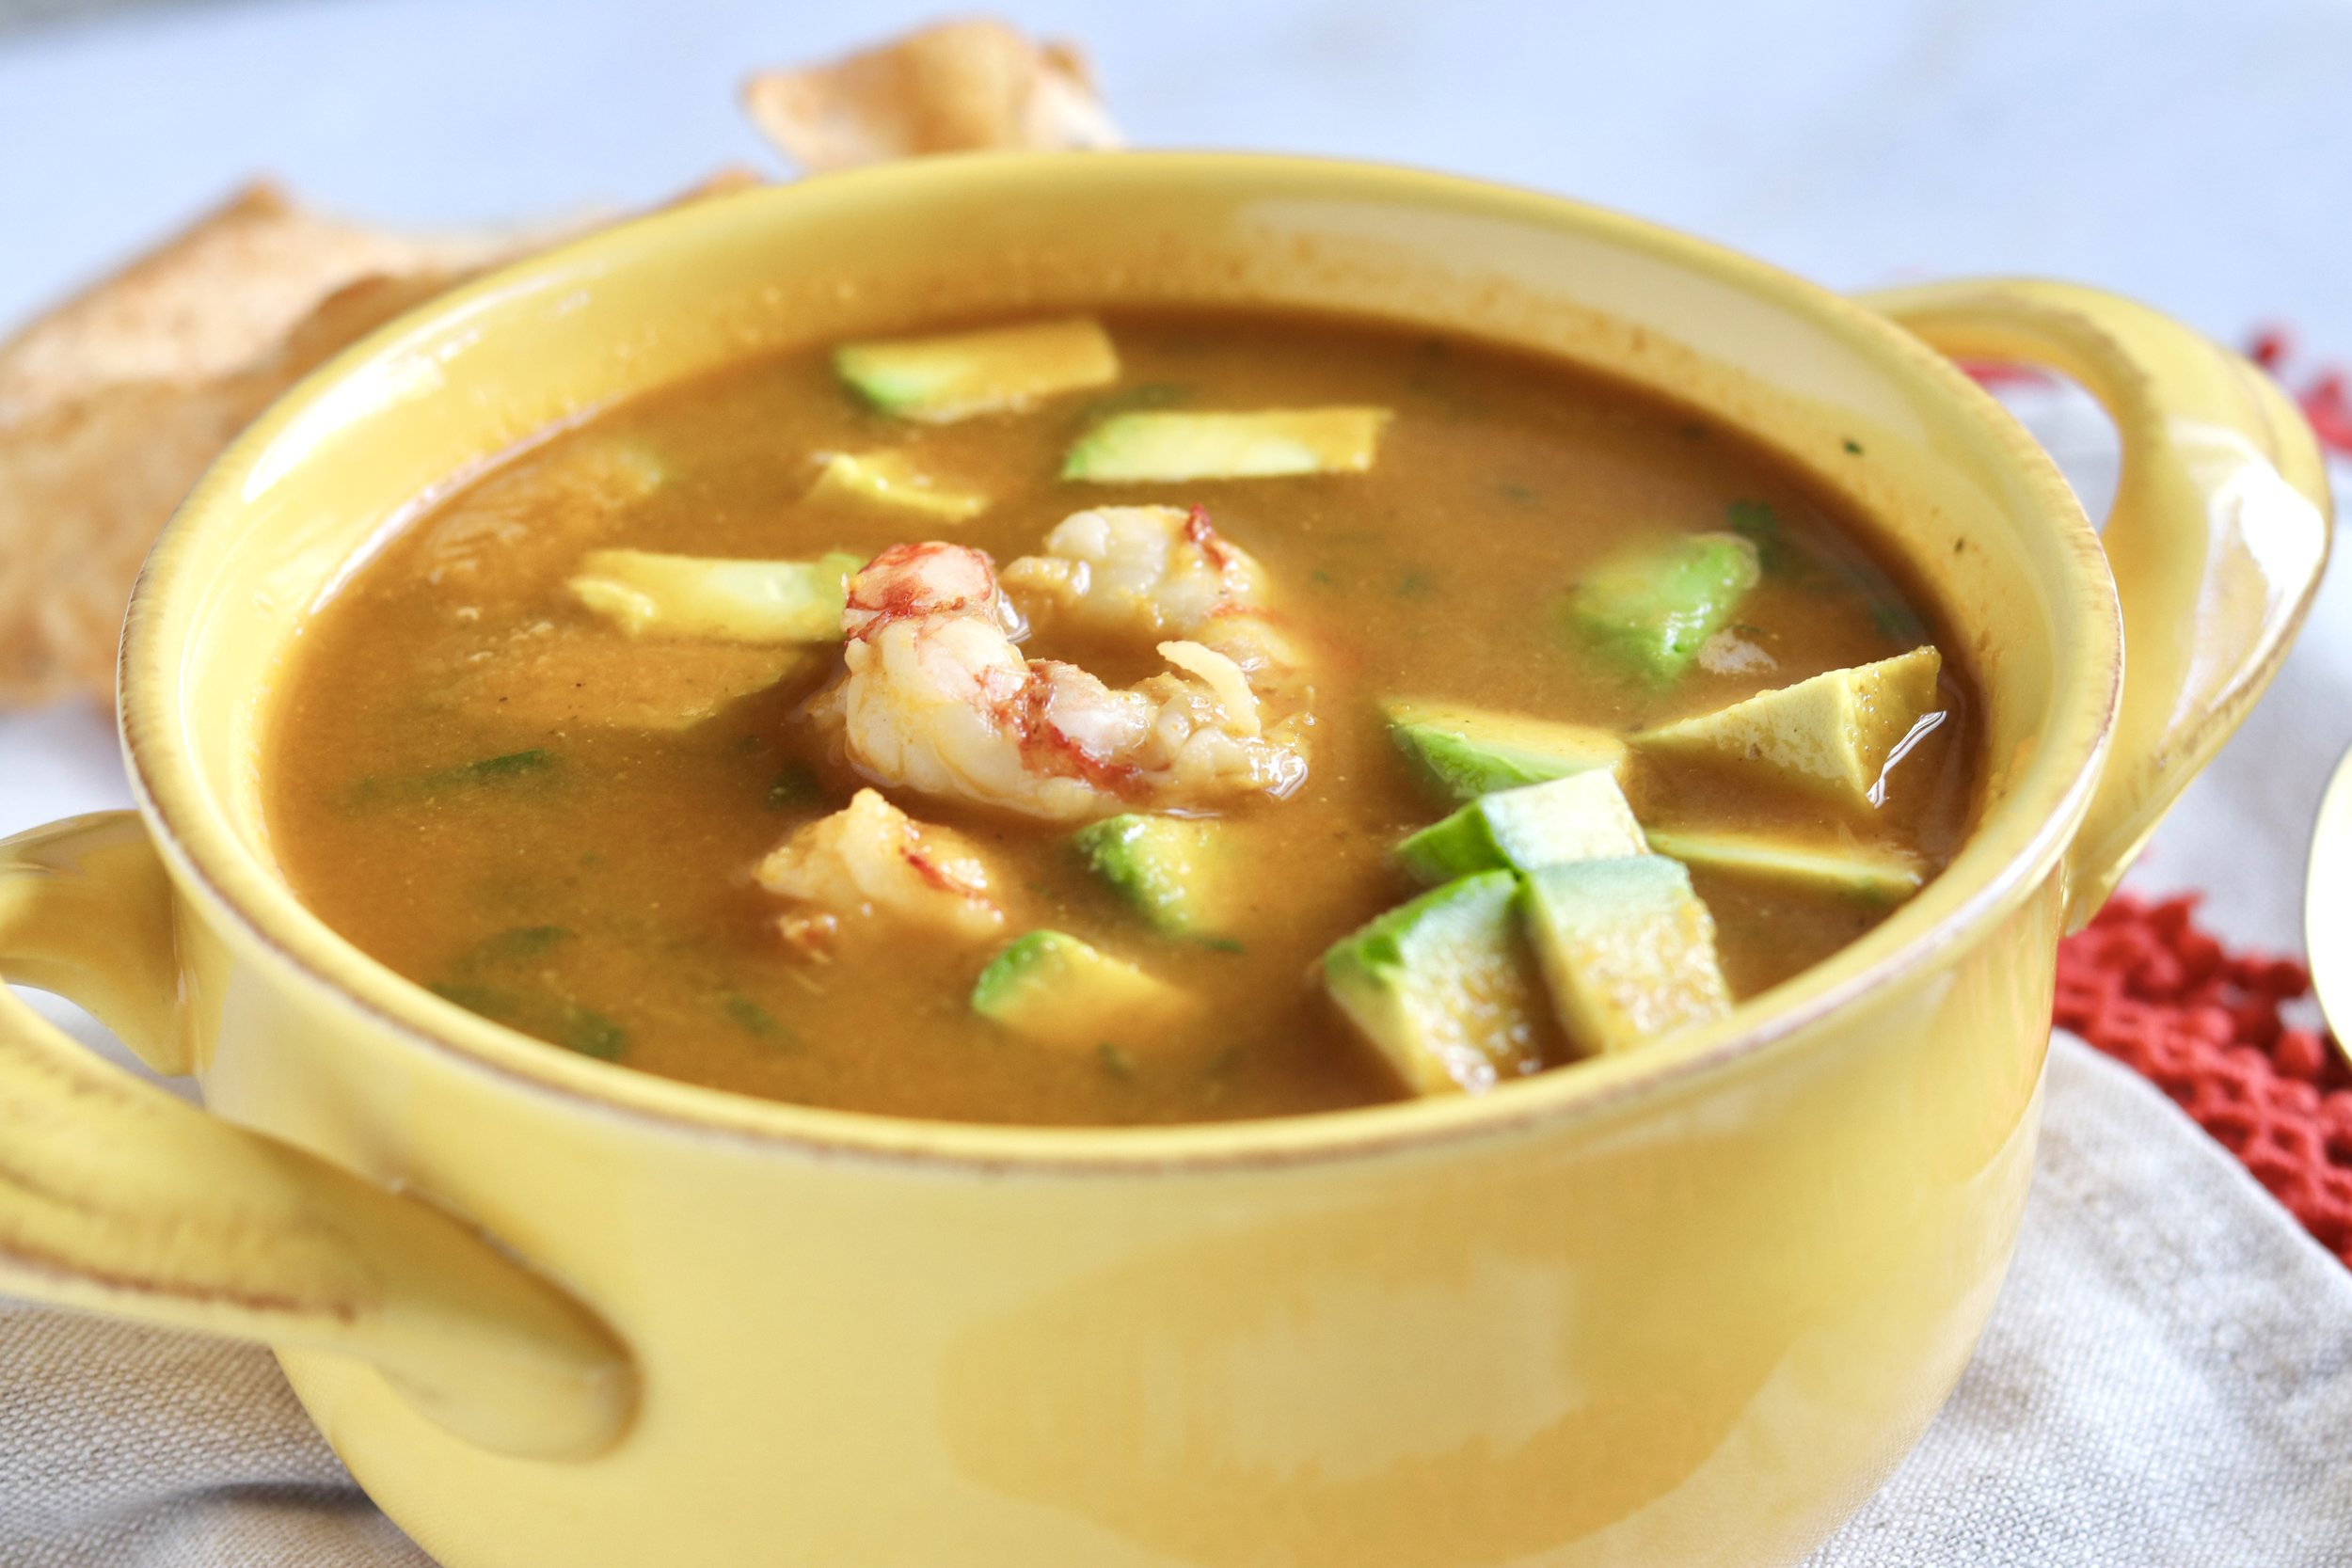 Spicy Shrimp Soup by I'd Eat That Food